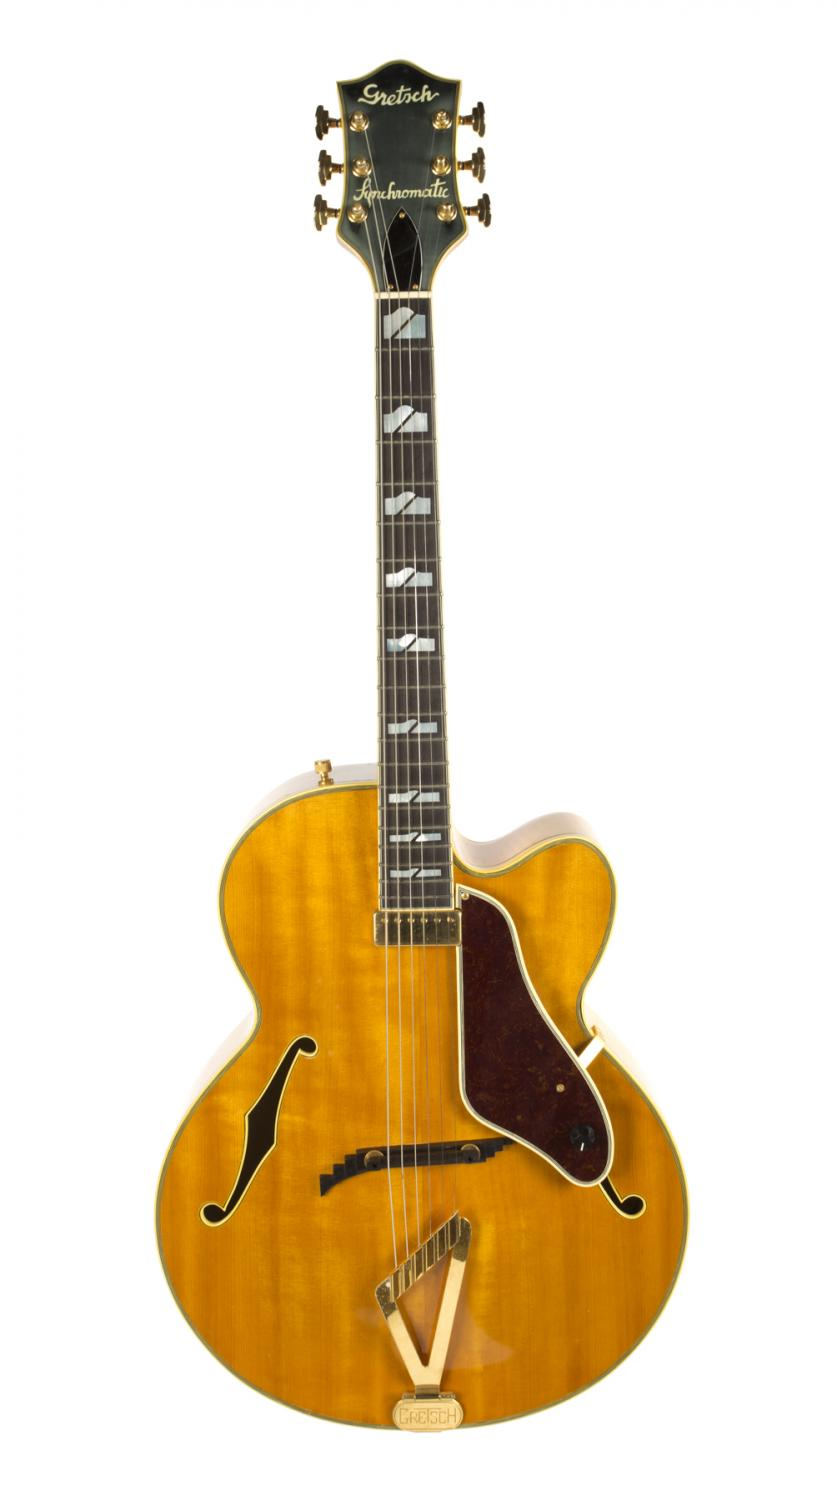 Do you dig Gretschs? Check out these.......-9c3997d1-e325-43d5-b8c0-606e6ae0800f-jpeg